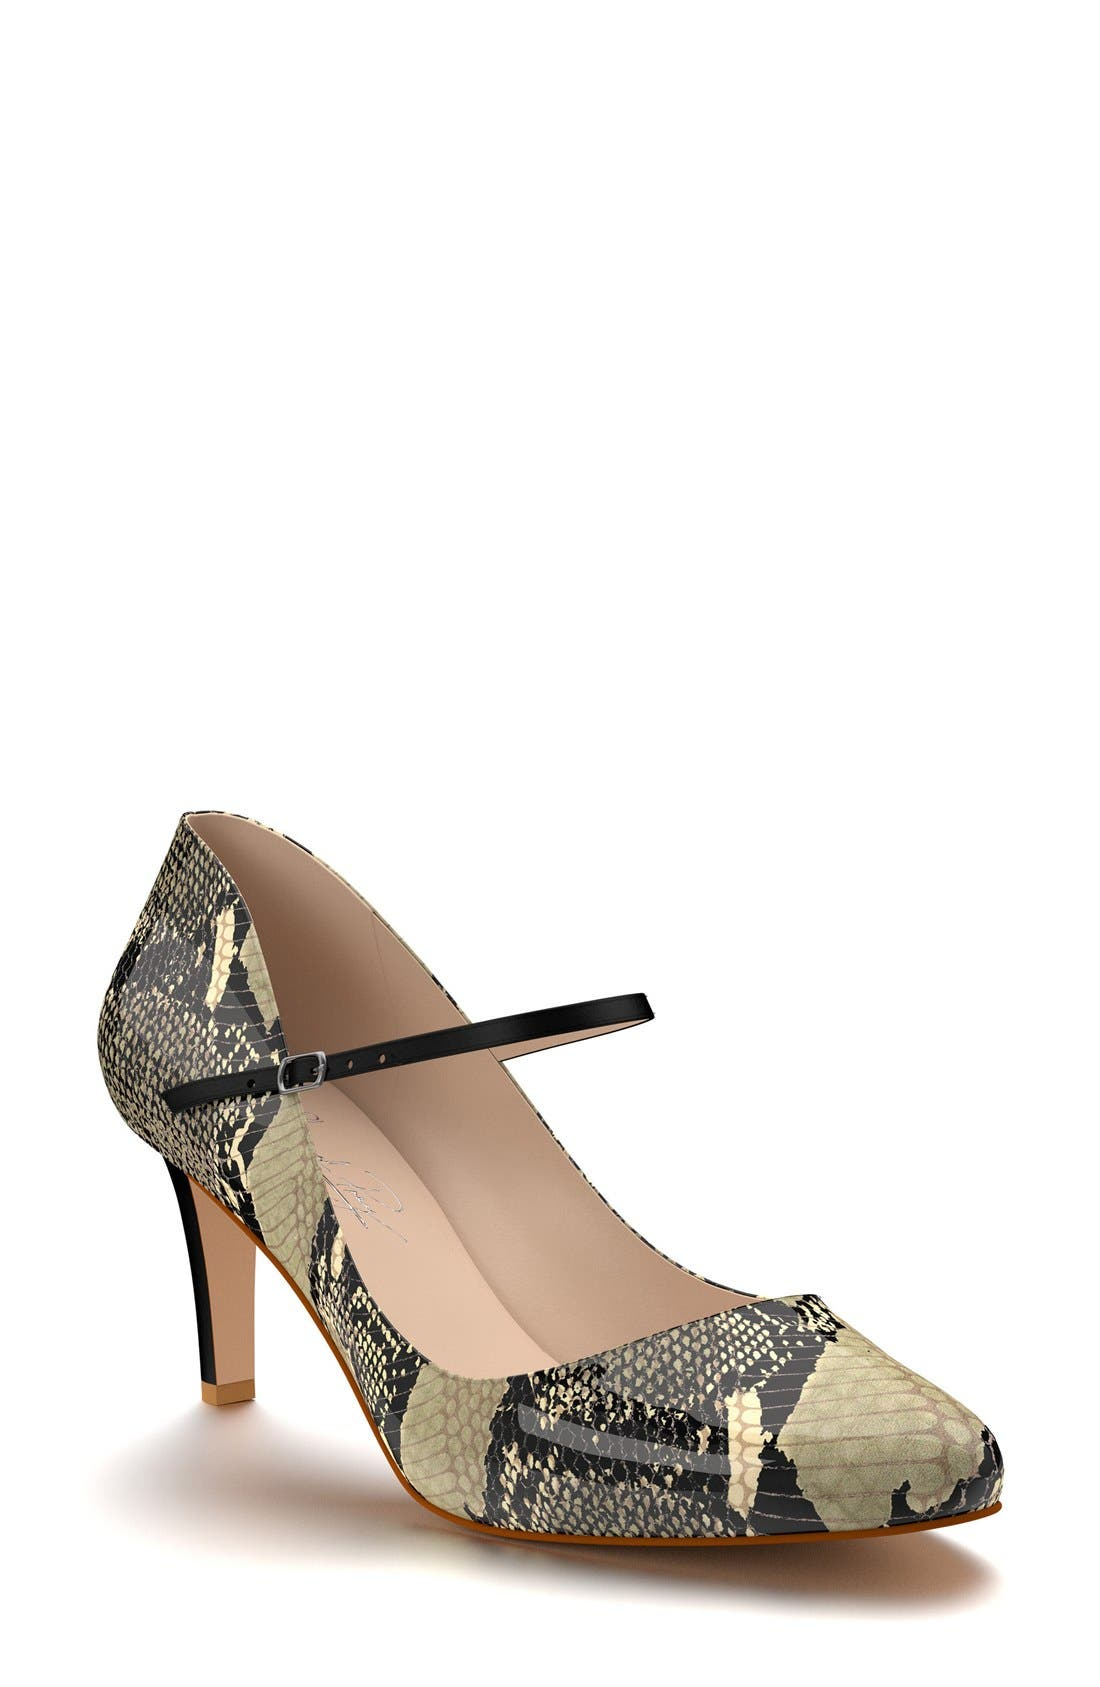 Mary Jane Pump,                         Main,                         color, Beige Snake Print Leather